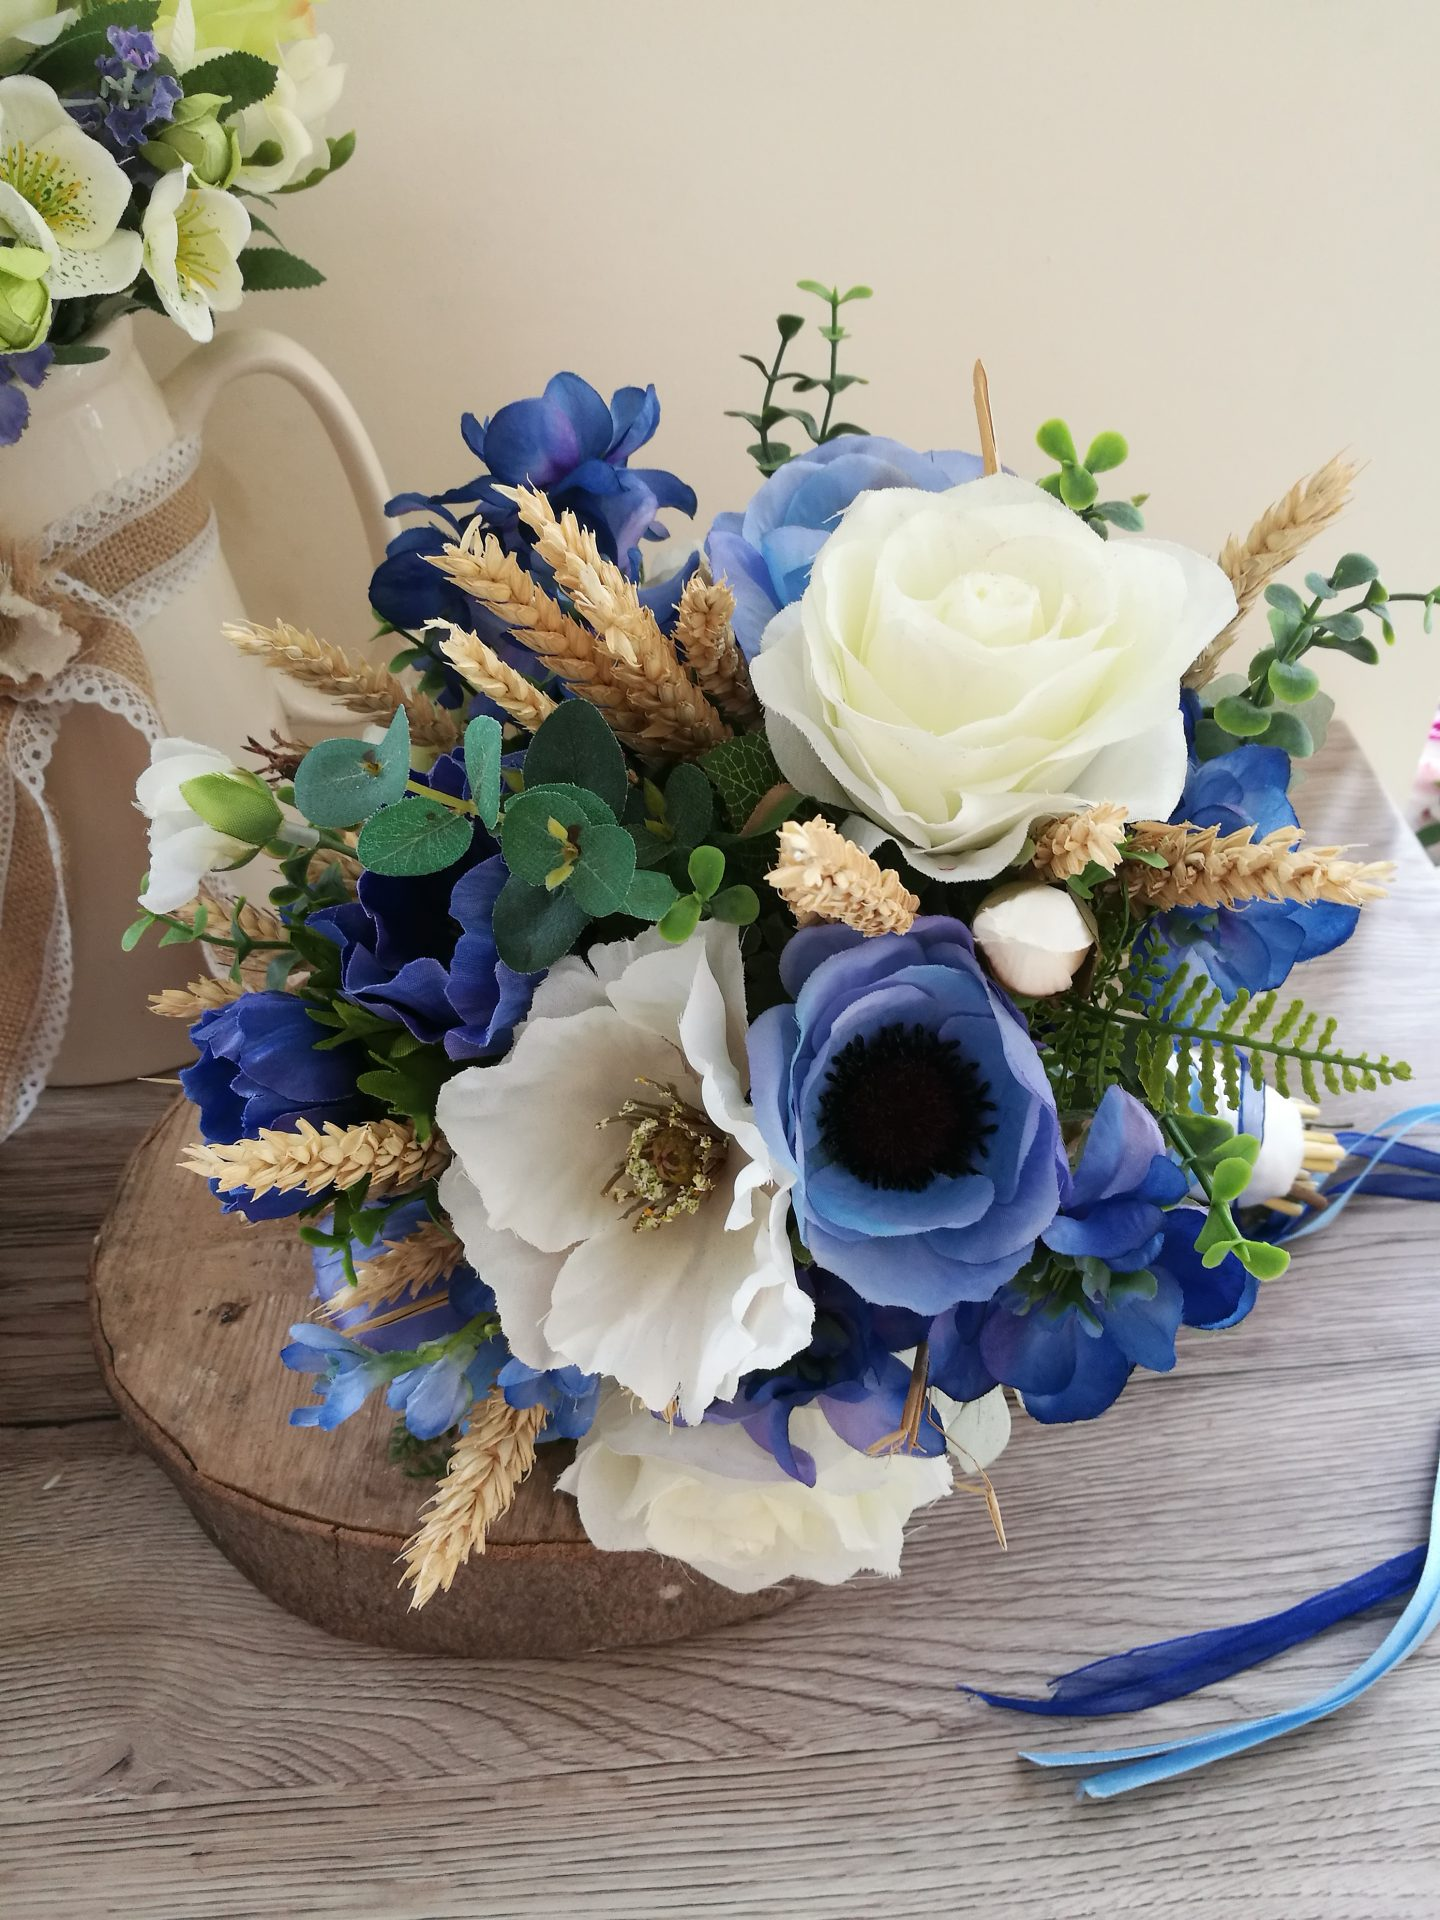 Blue Delphinium wedding bouquet